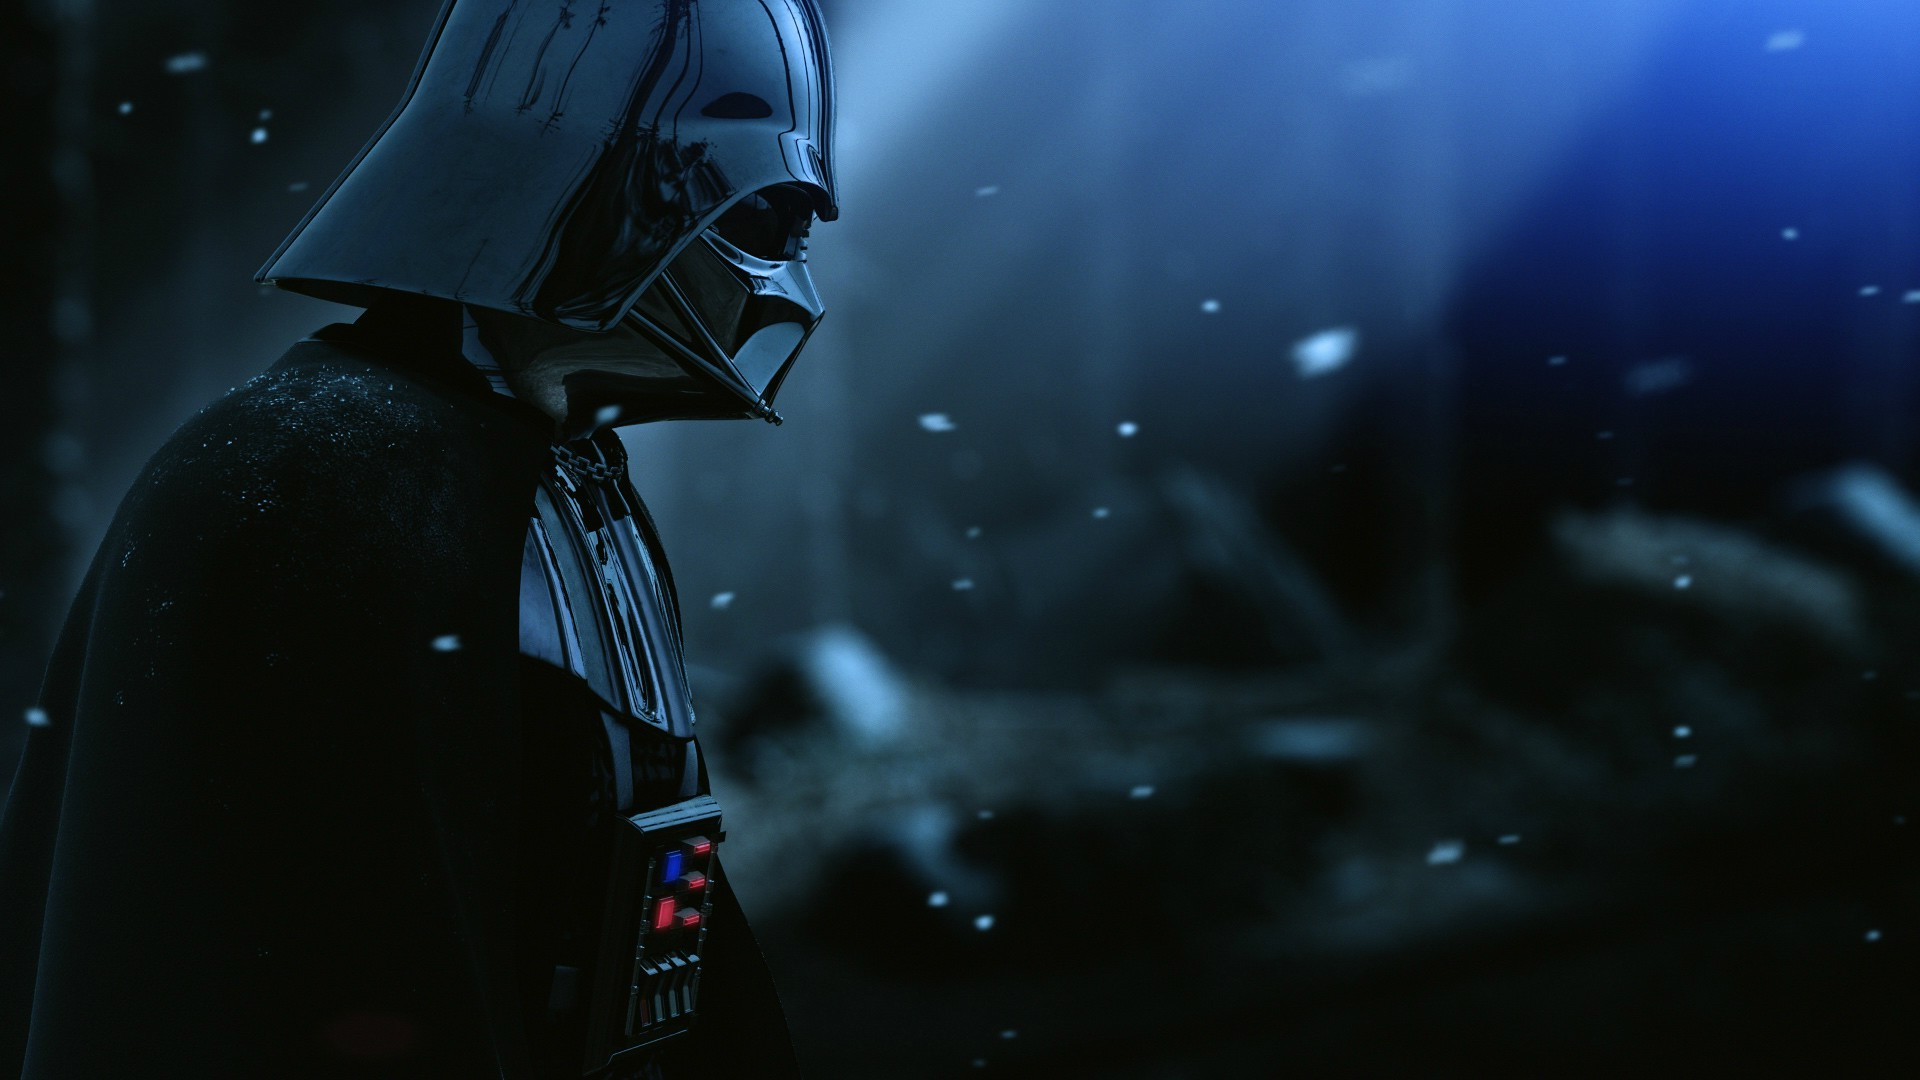 Free Download Desktop Darth Vader Wallpapers 1920x1080 For Your